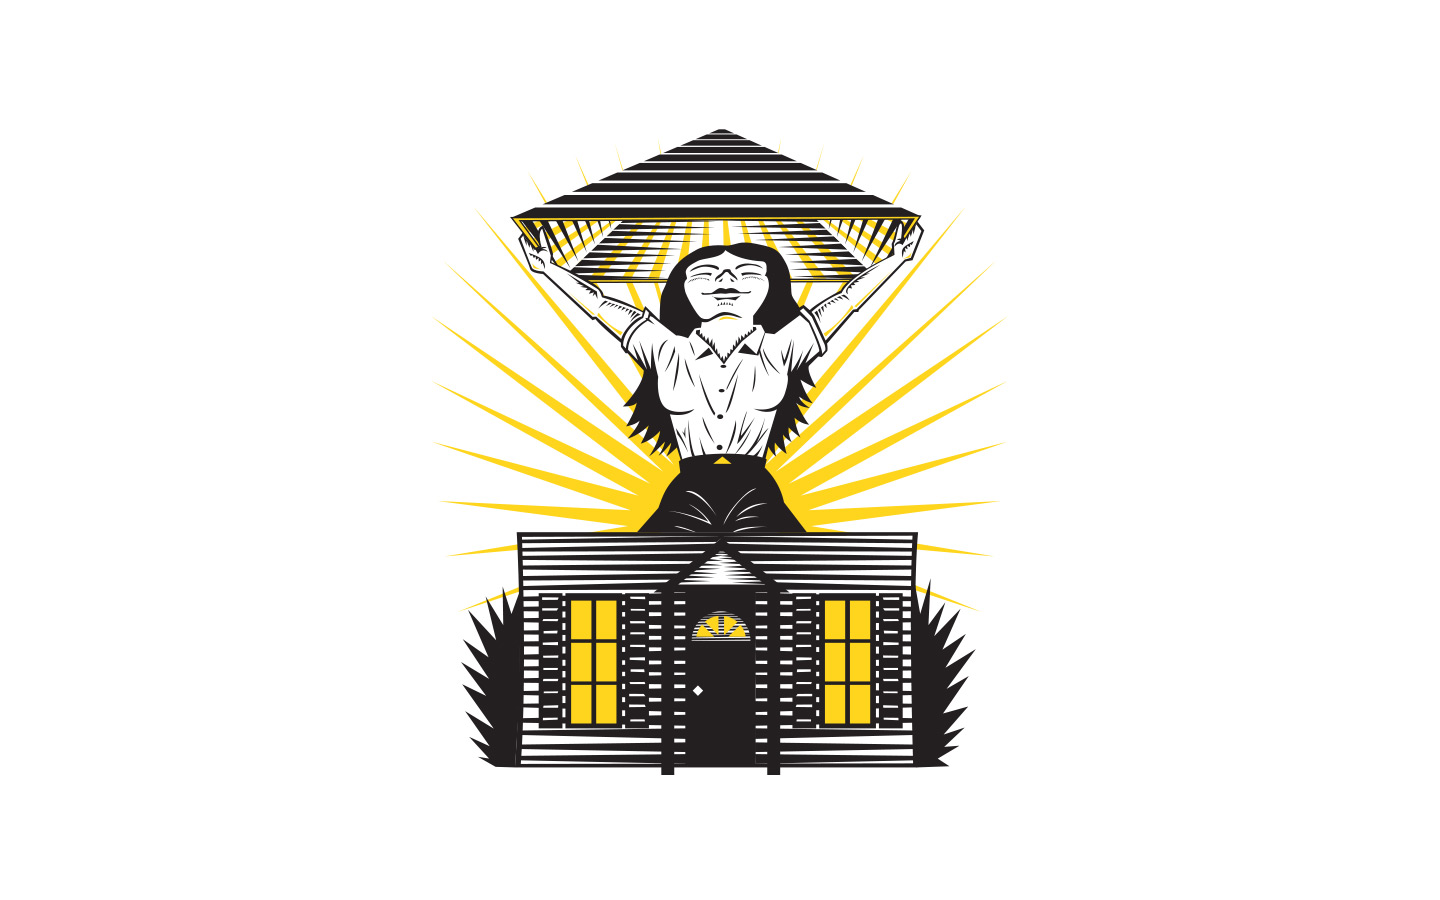 women's build house illustration salt lake city utah